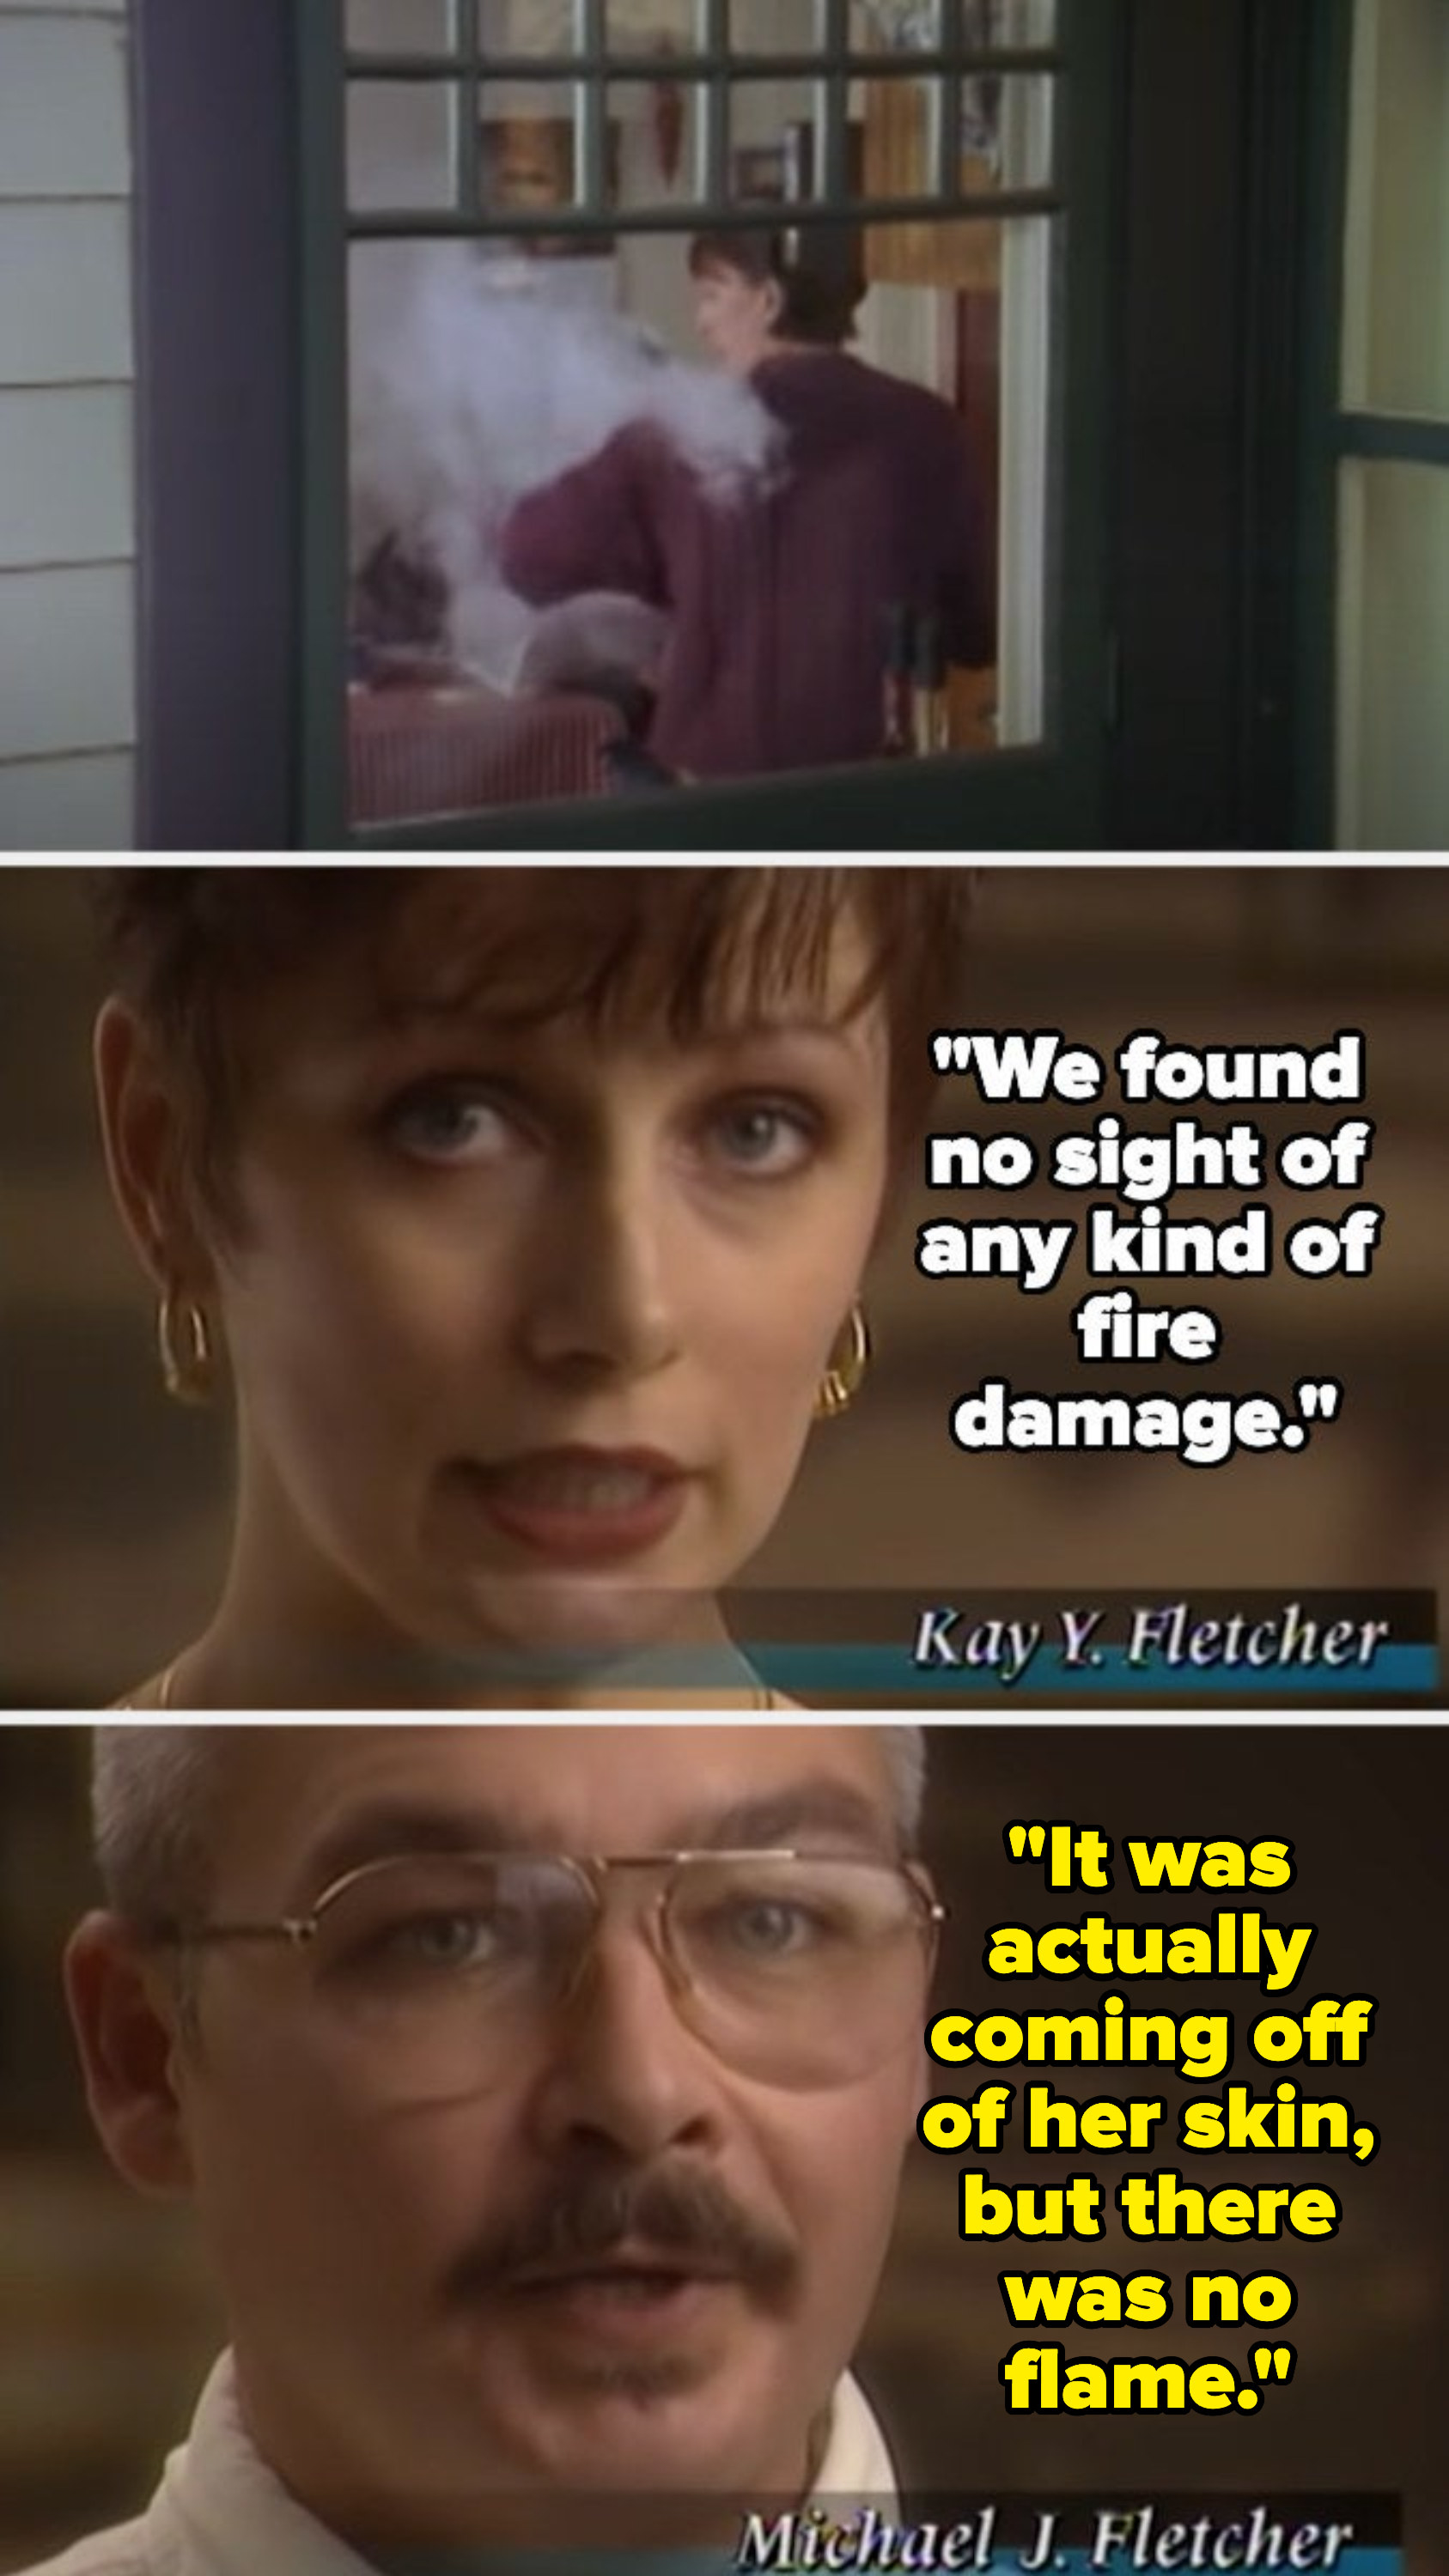 Kay and Michael Fletcher talking about smoke coming from her body with no flame while we see a reenactment